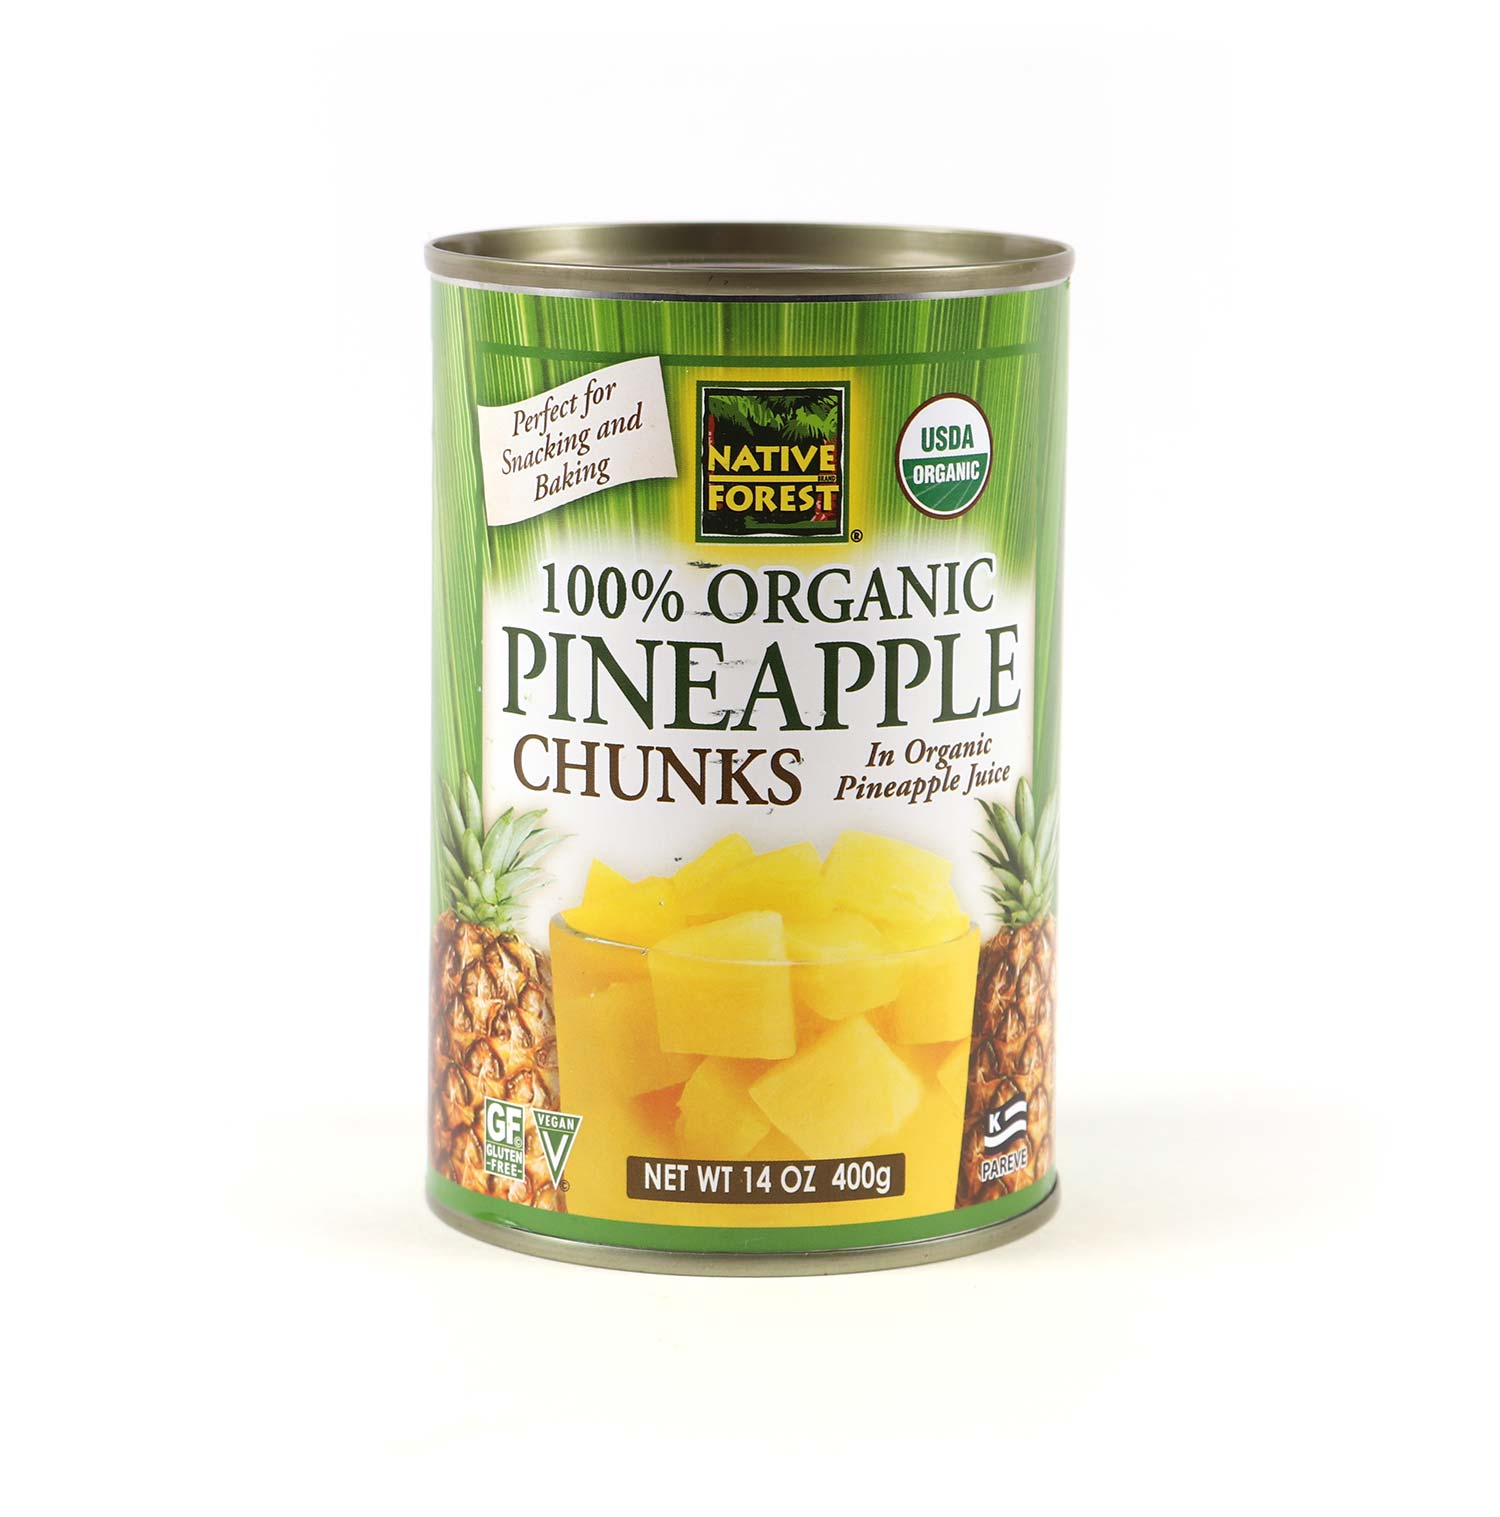 Canned Pineapple, Chunks-Organic